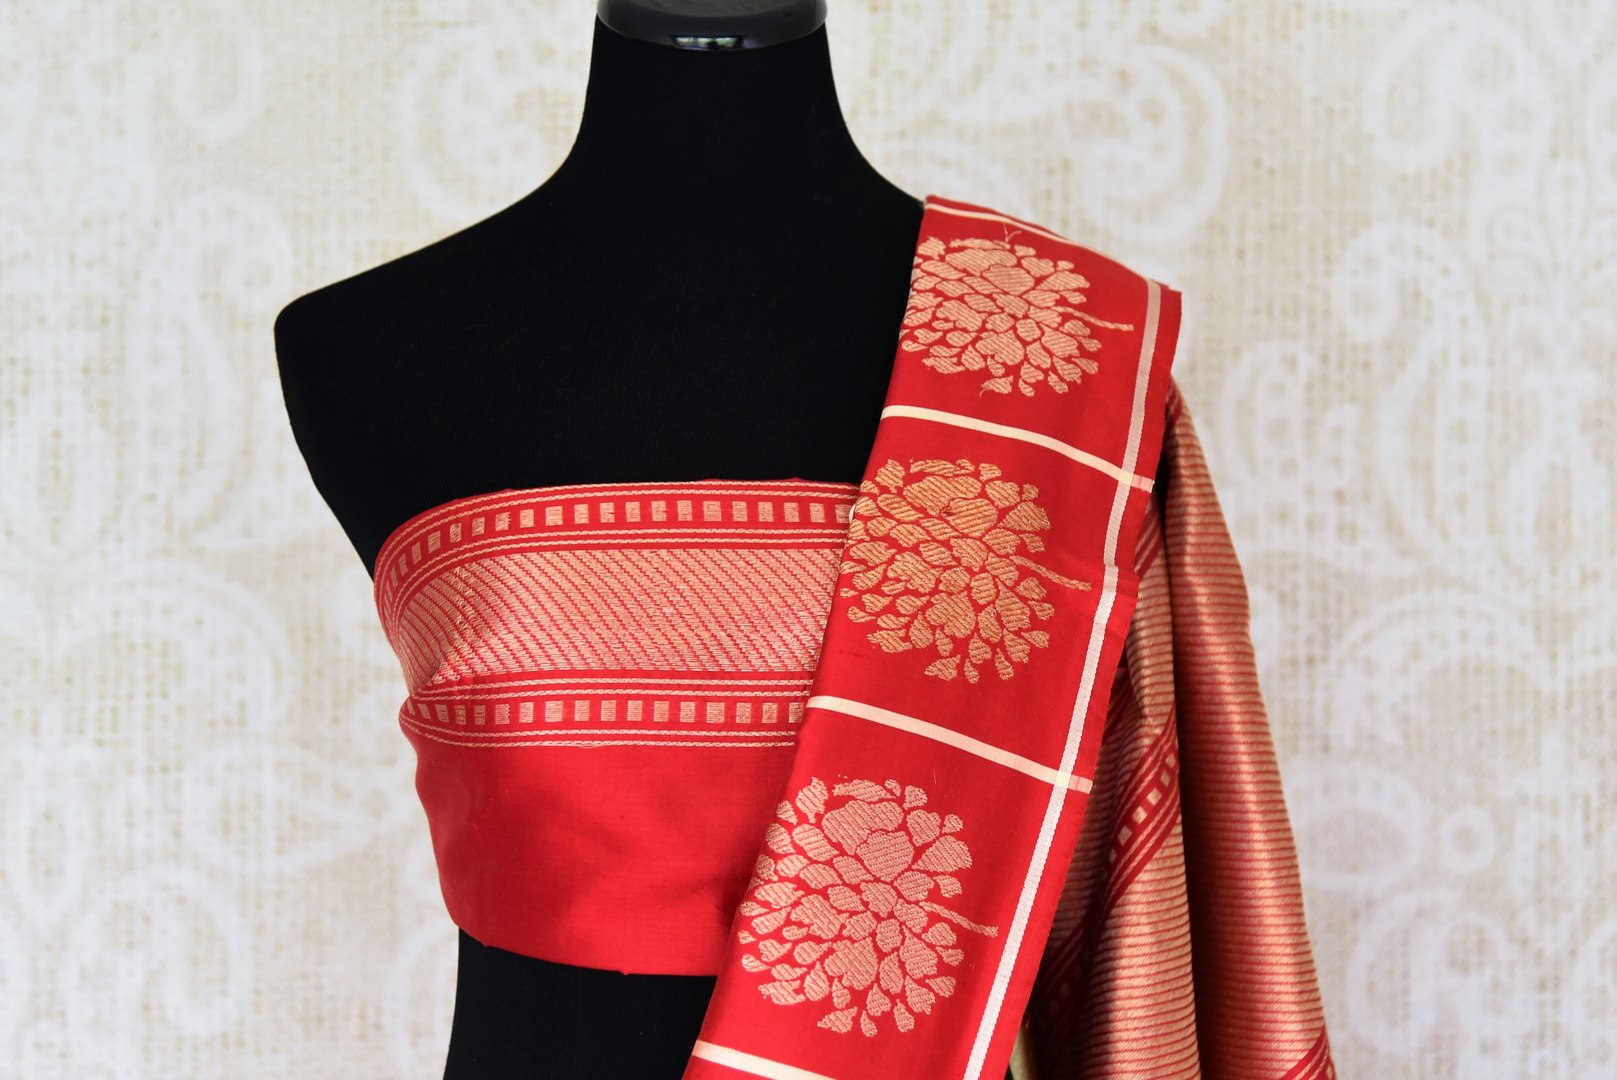 Off-white Banarasi silk saree with red zari buta border buy online in USA. Adorn your style with a range of exquisite handloom sarees from Pure Elegance Indian clothing store in USA. We have an exquisite range of Indian designer sarees, silk sarees, Banarasi saris and many other varieties also available at our online store.-blouse pallu